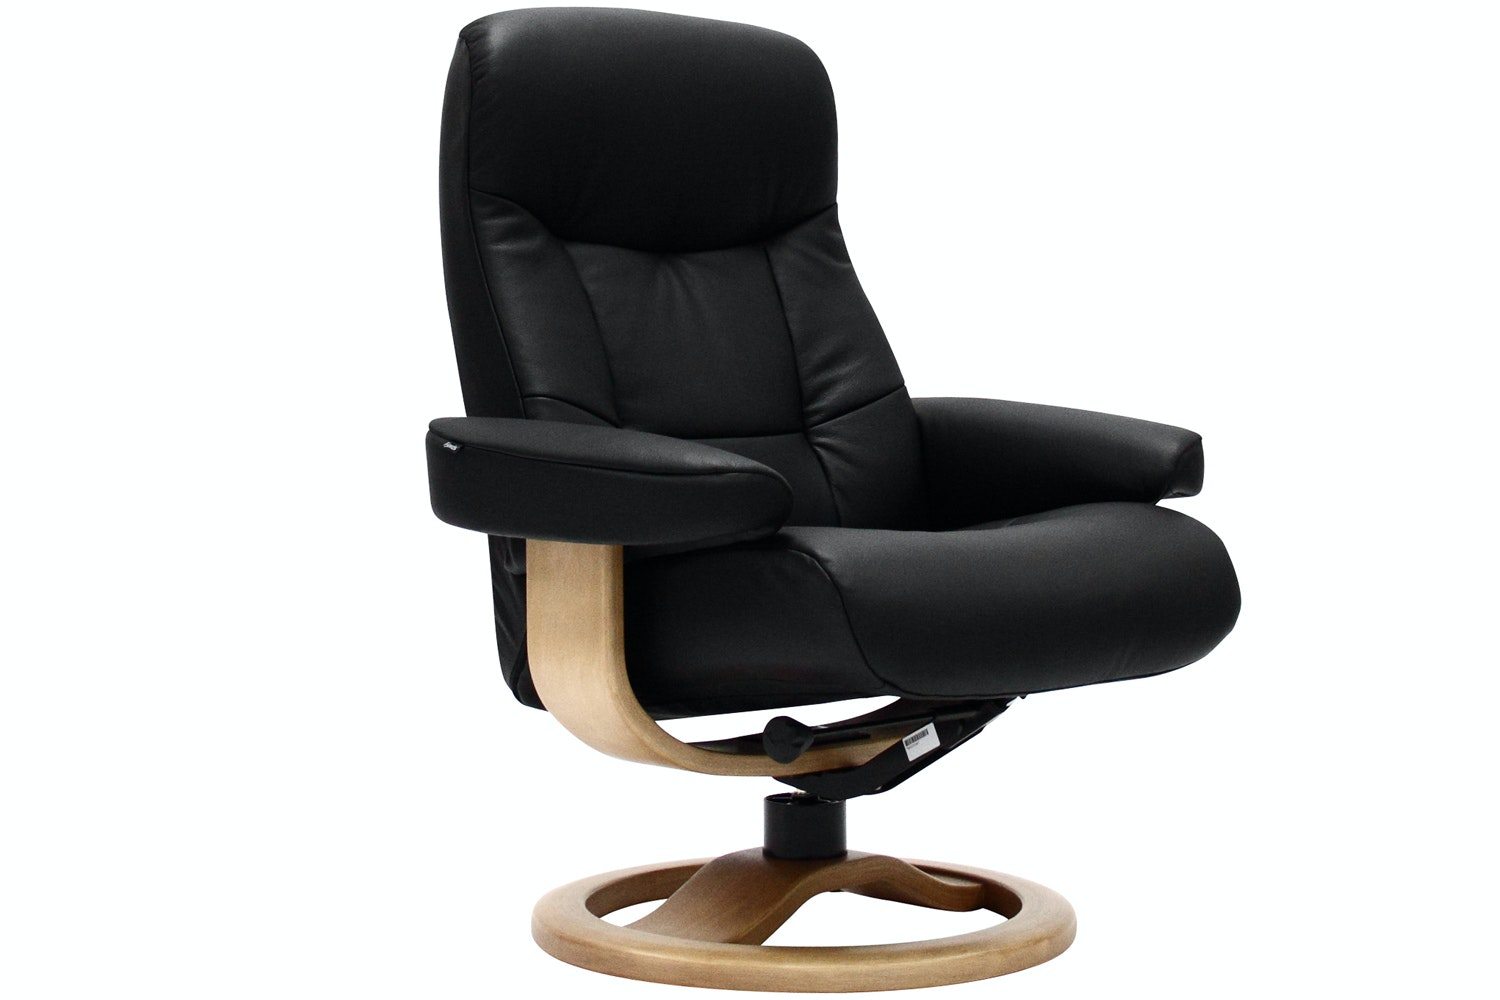 Bilbao Chair with Stool | Black Leather with Oak Base